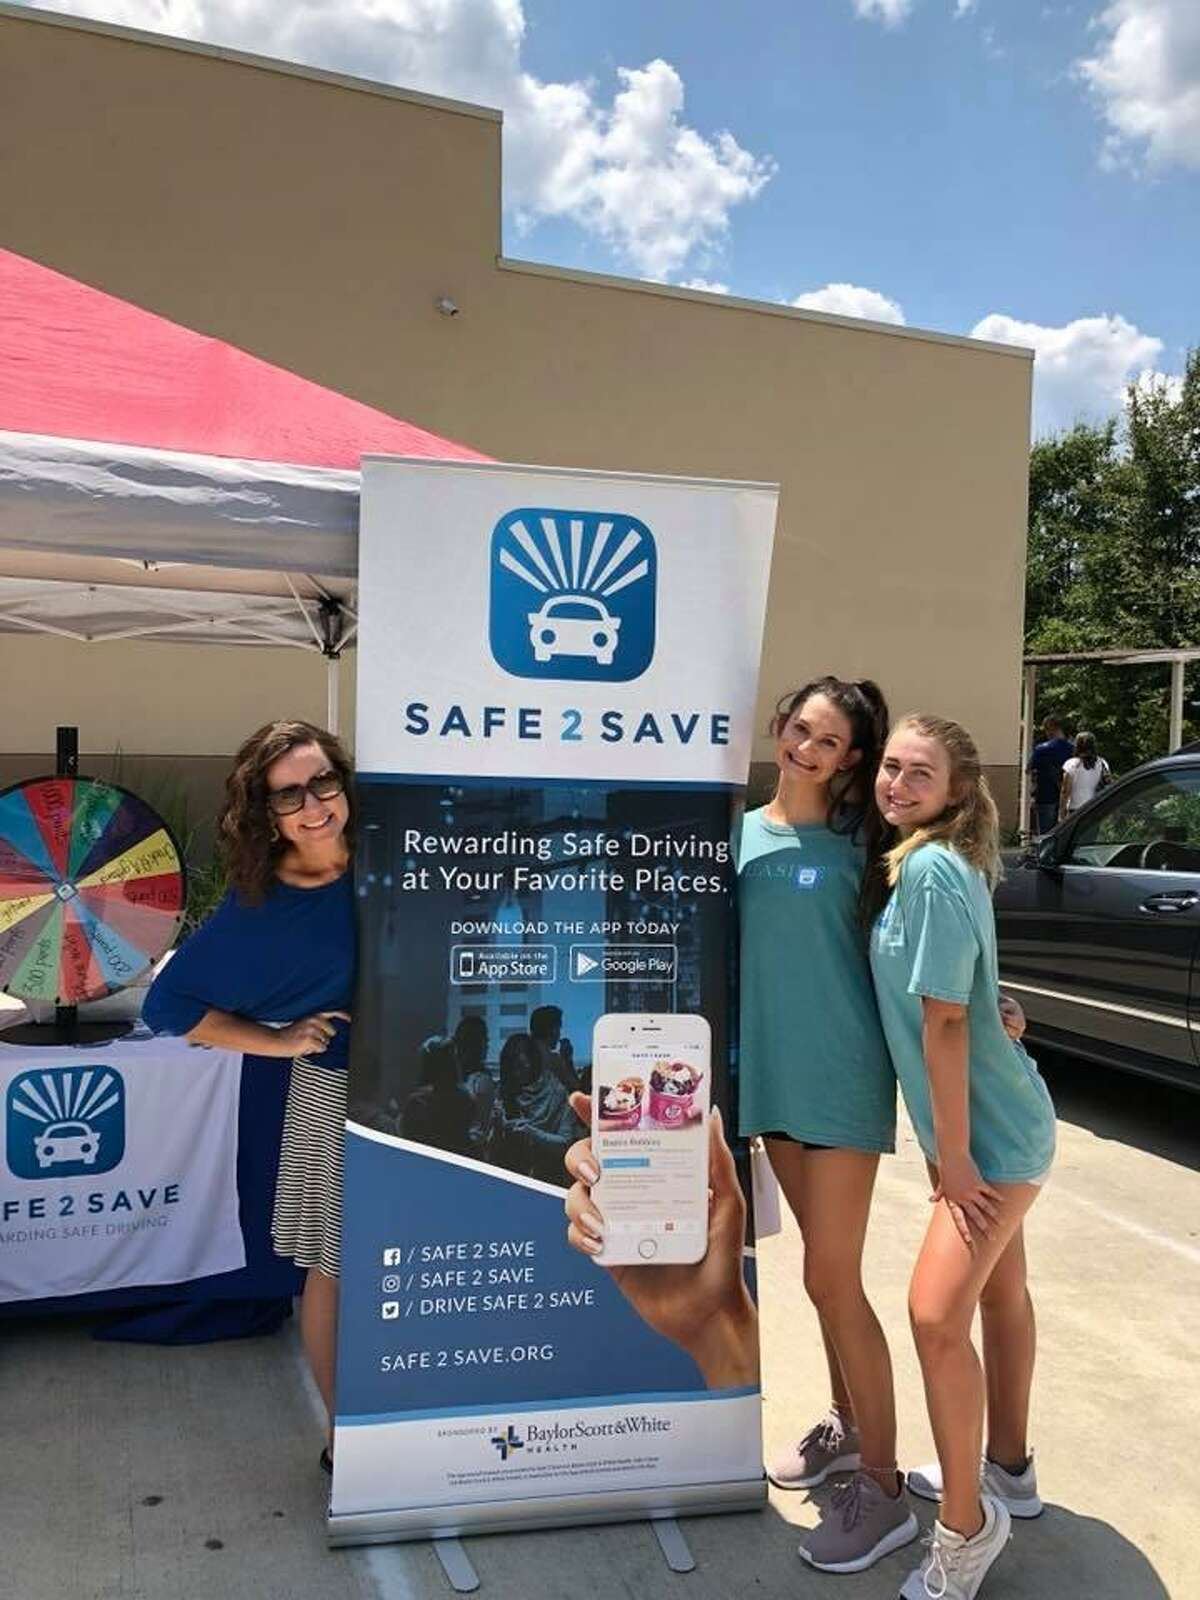 Marci Corry decided to make an impact on safe driving in communities throughout Texas. After researching behavior change and observing that her young children responded well with positive reinforcement, Corry decided to encourage people in a positive way to stay off their phones while driving. She founded SAFE 2 SAVE in October 2016.In just two years, the app has gained a lot of popularity with over 89,000 users. Businesses on the app are in many cities throughout Texas, including at Dairy Queen in The Woodlands, with plans to expand across the entire state of Texas and go nationwide.